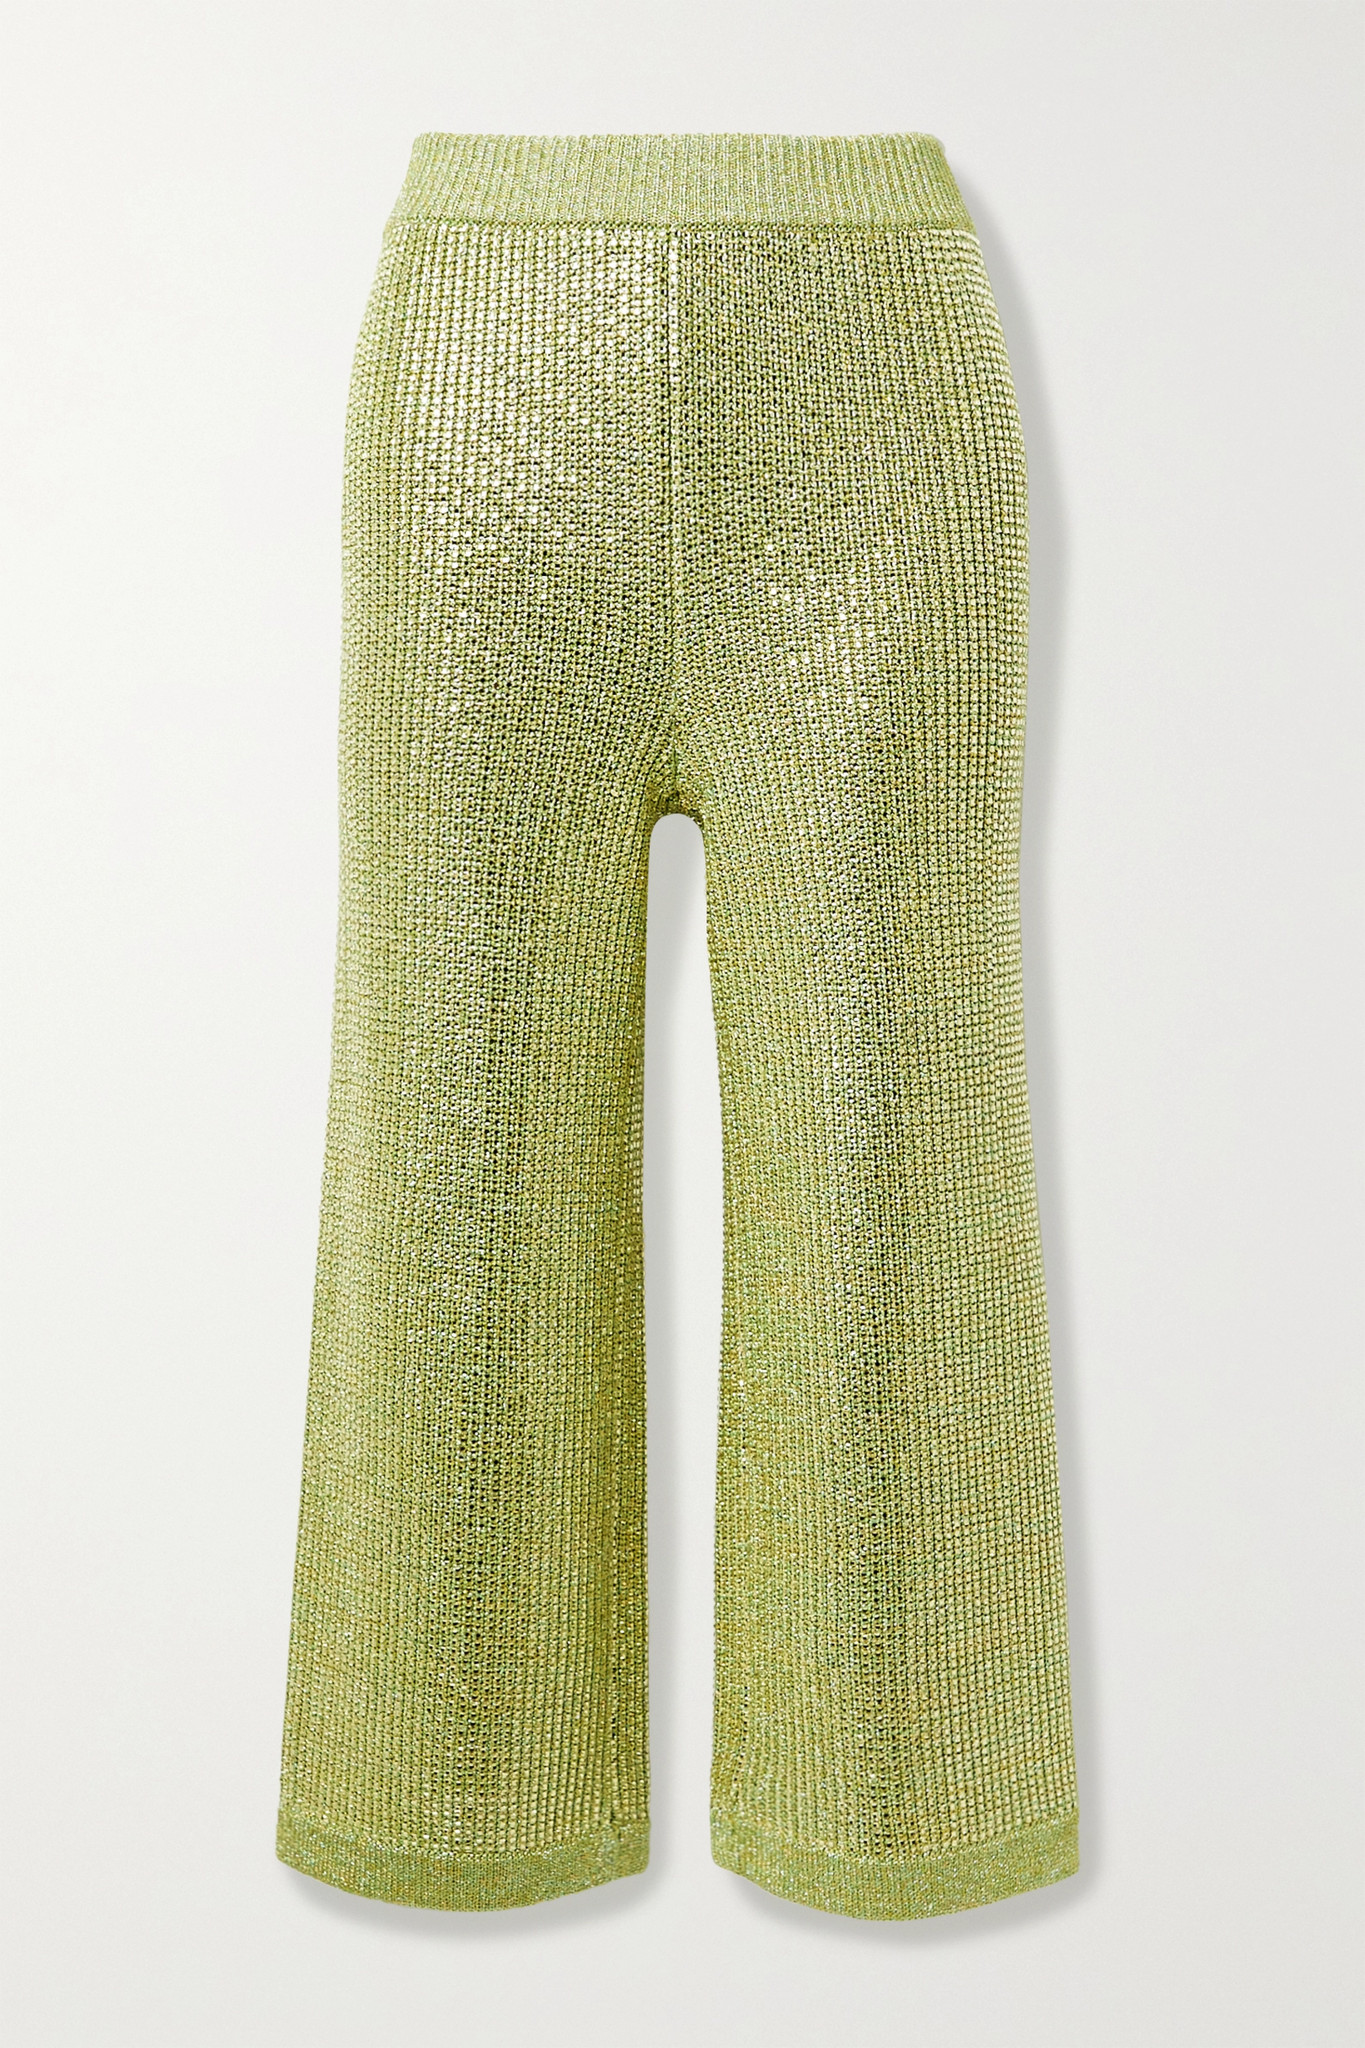 GUCCI - Cropped Crystal-embellished Metallic Knitted Wide-leg Pants - Yellow - x small